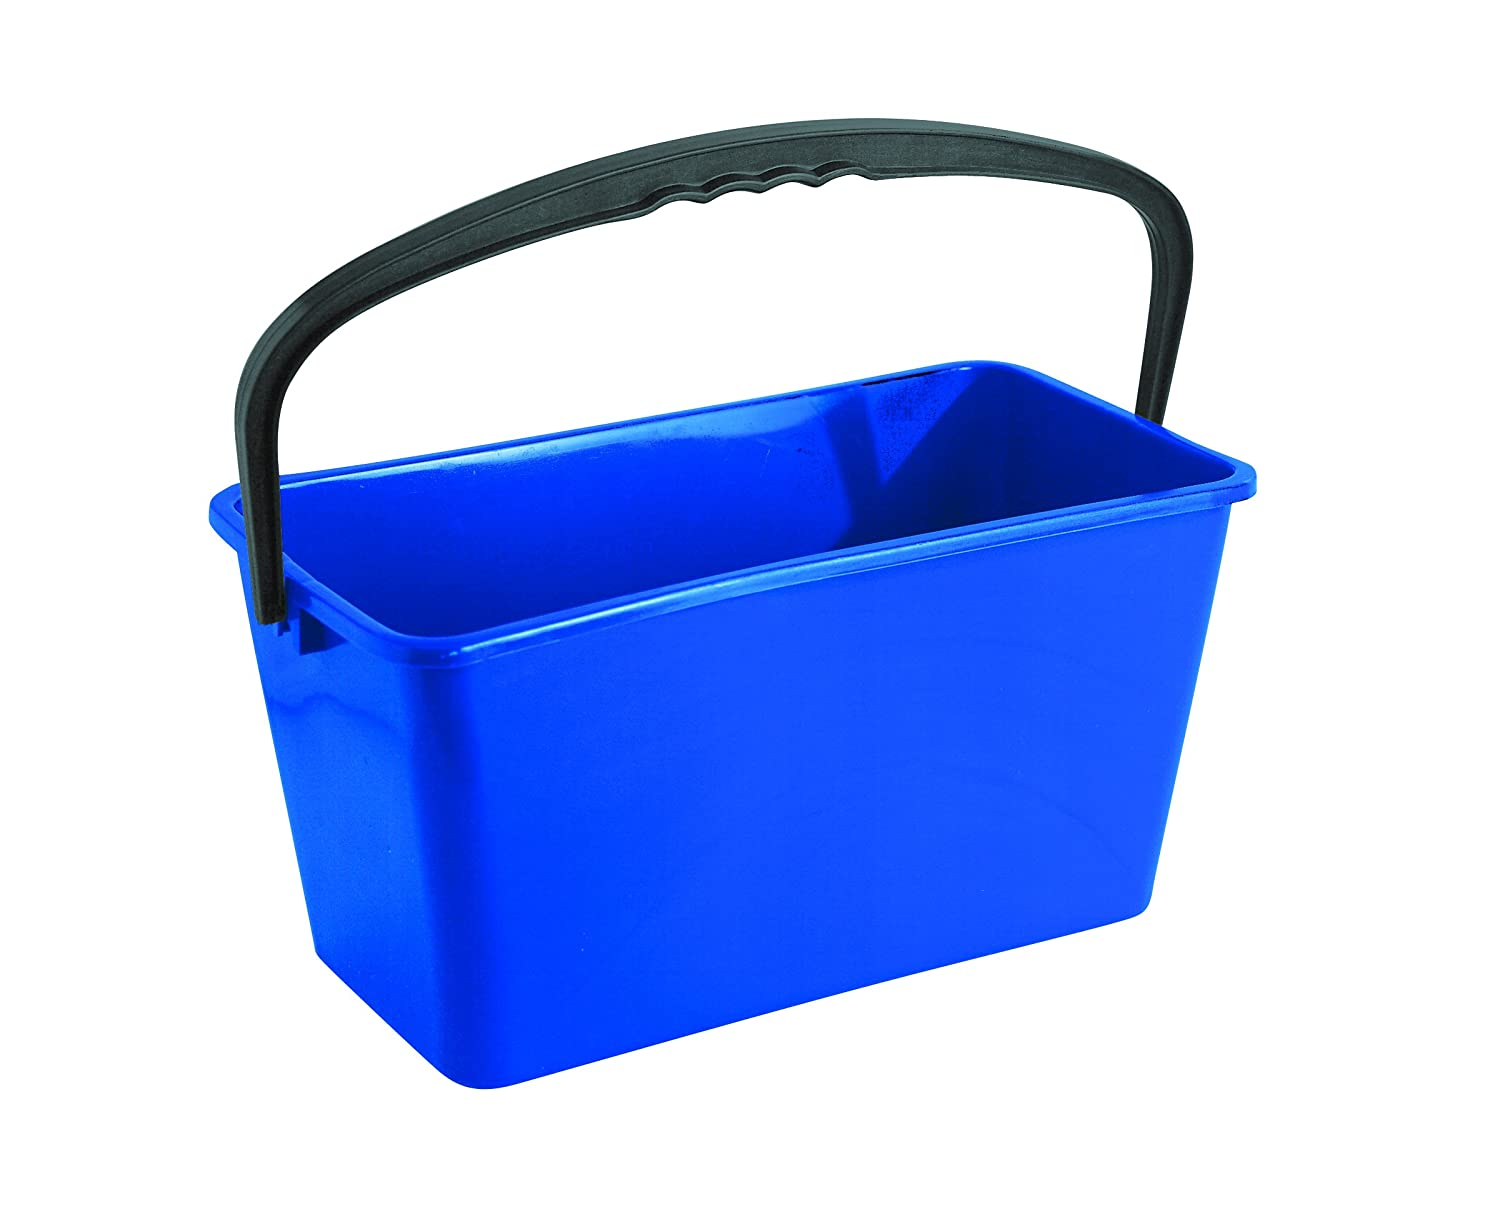 Discounted Cleaning Supplies Economy Windows Cleaners Utility Bucket, Blue, 12 L CD002